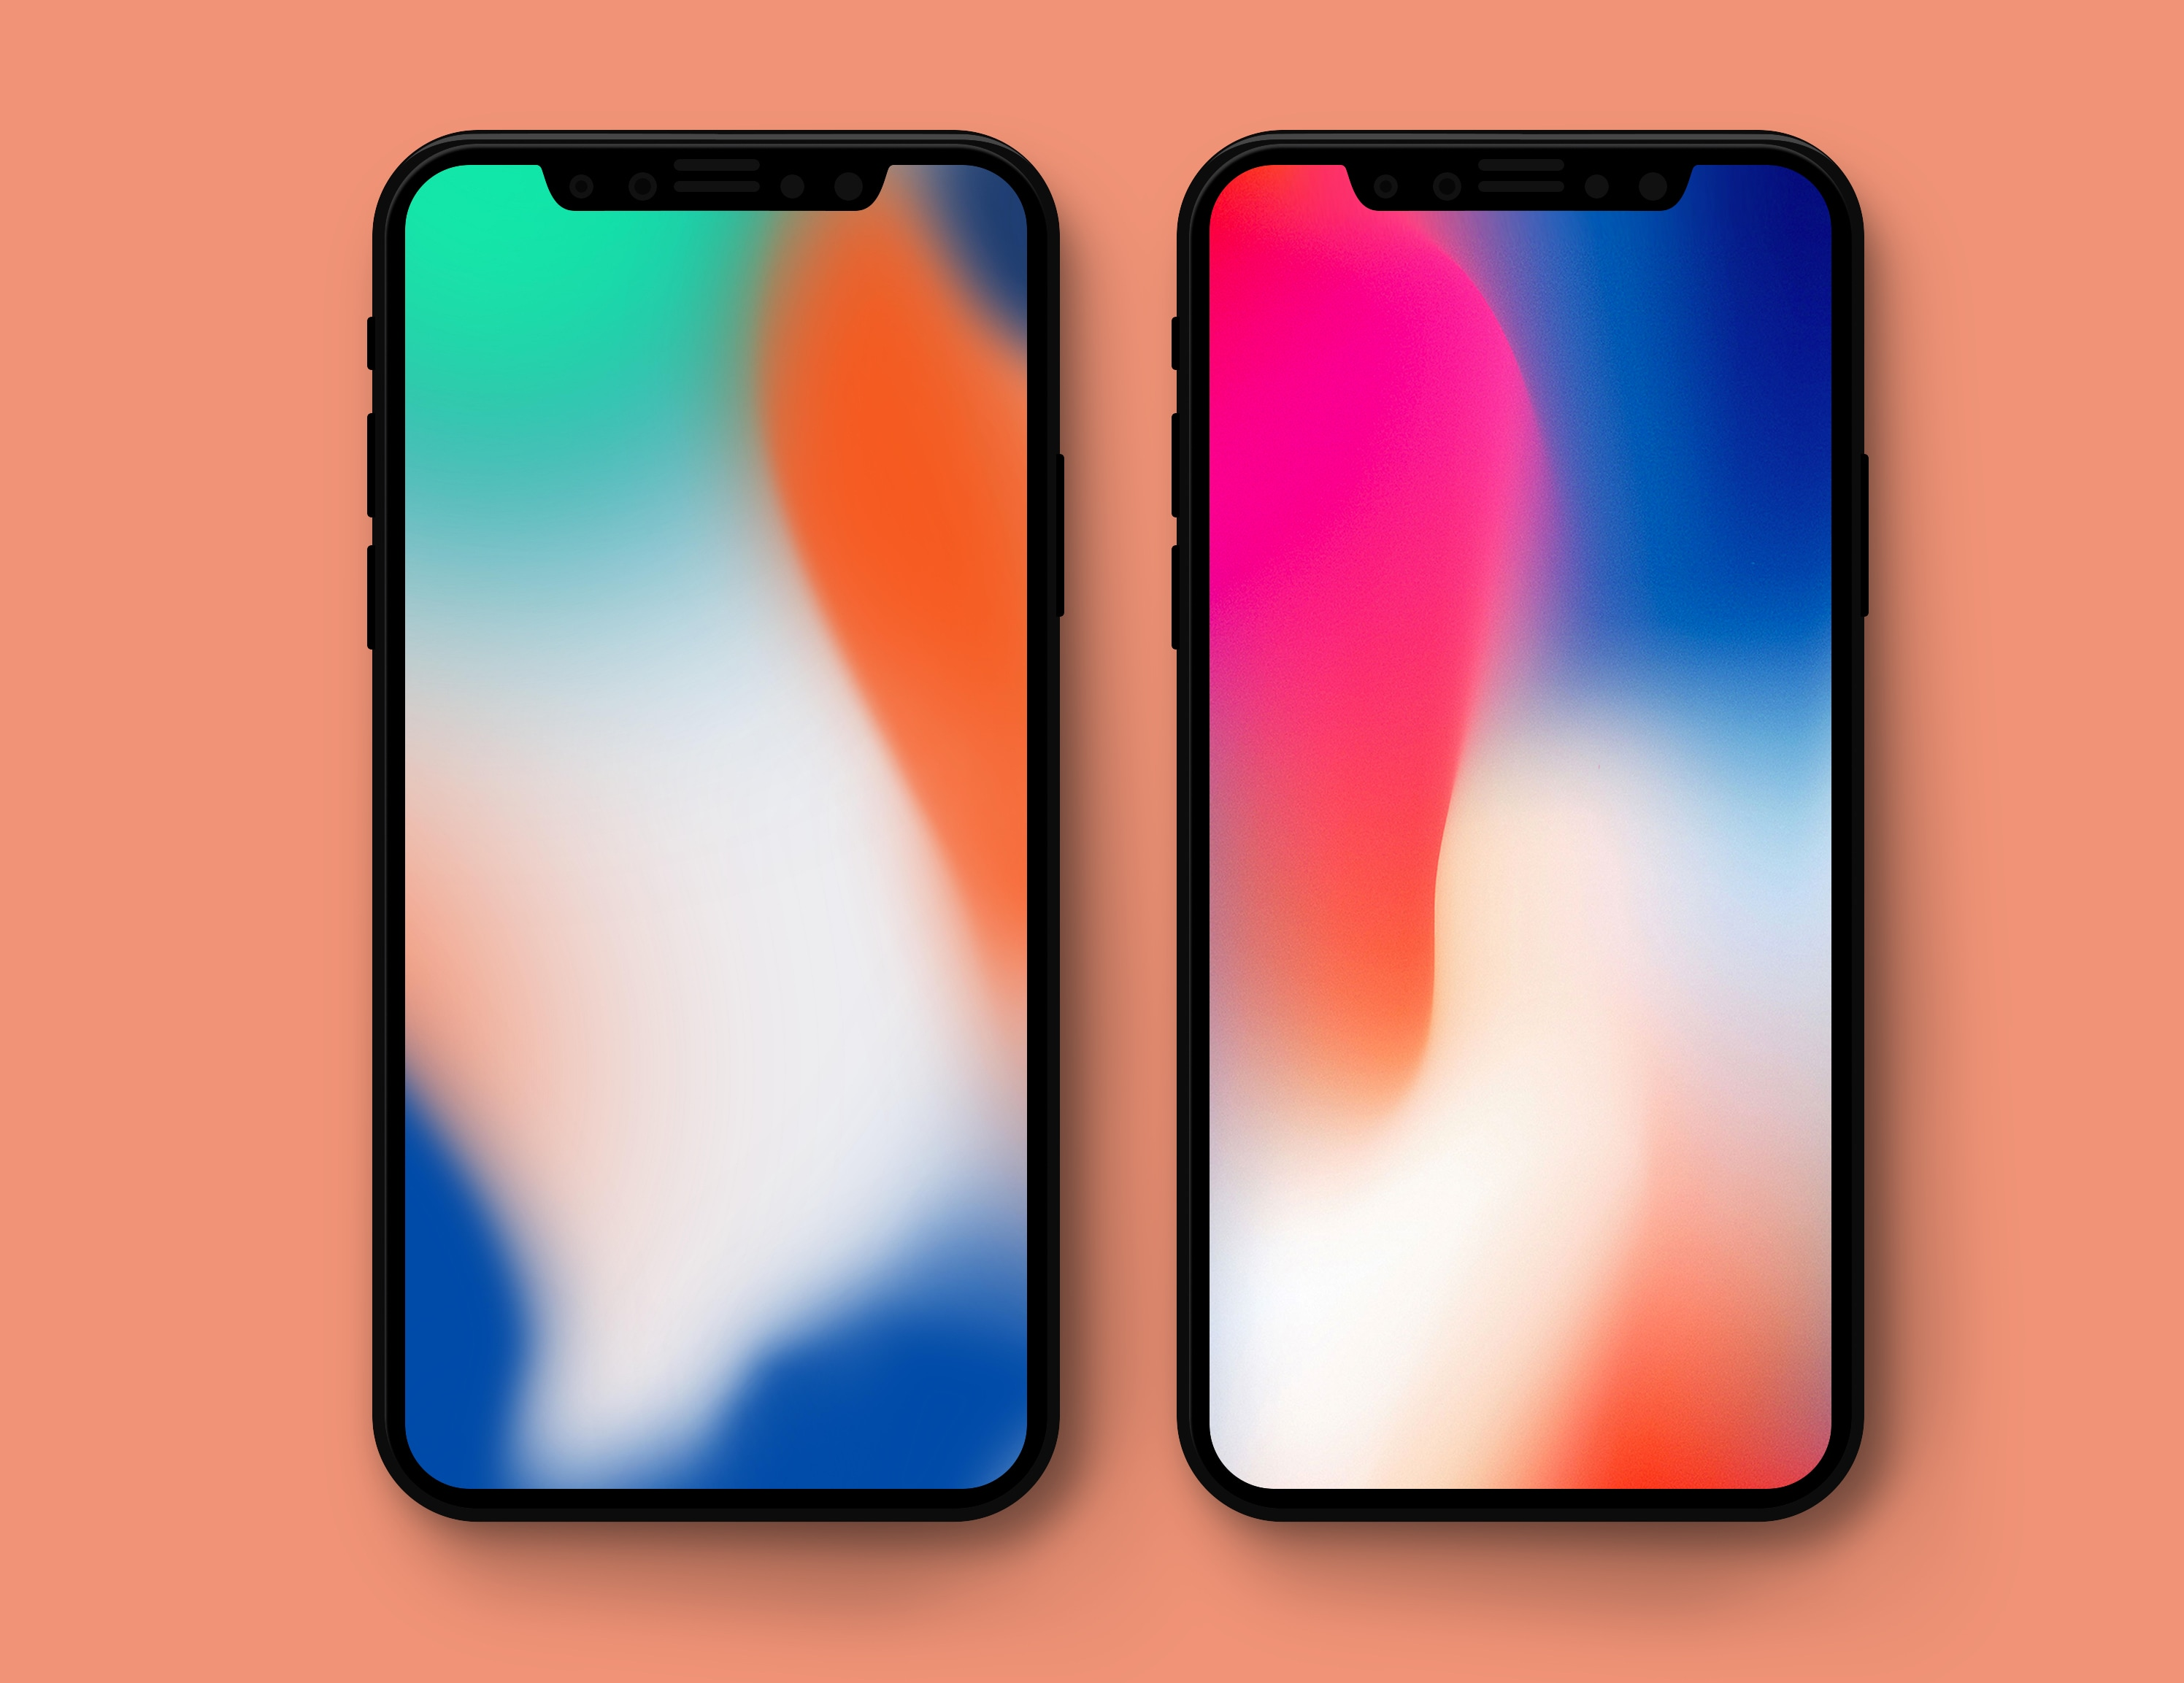 IPhone X-inspired Wallpaper Pack